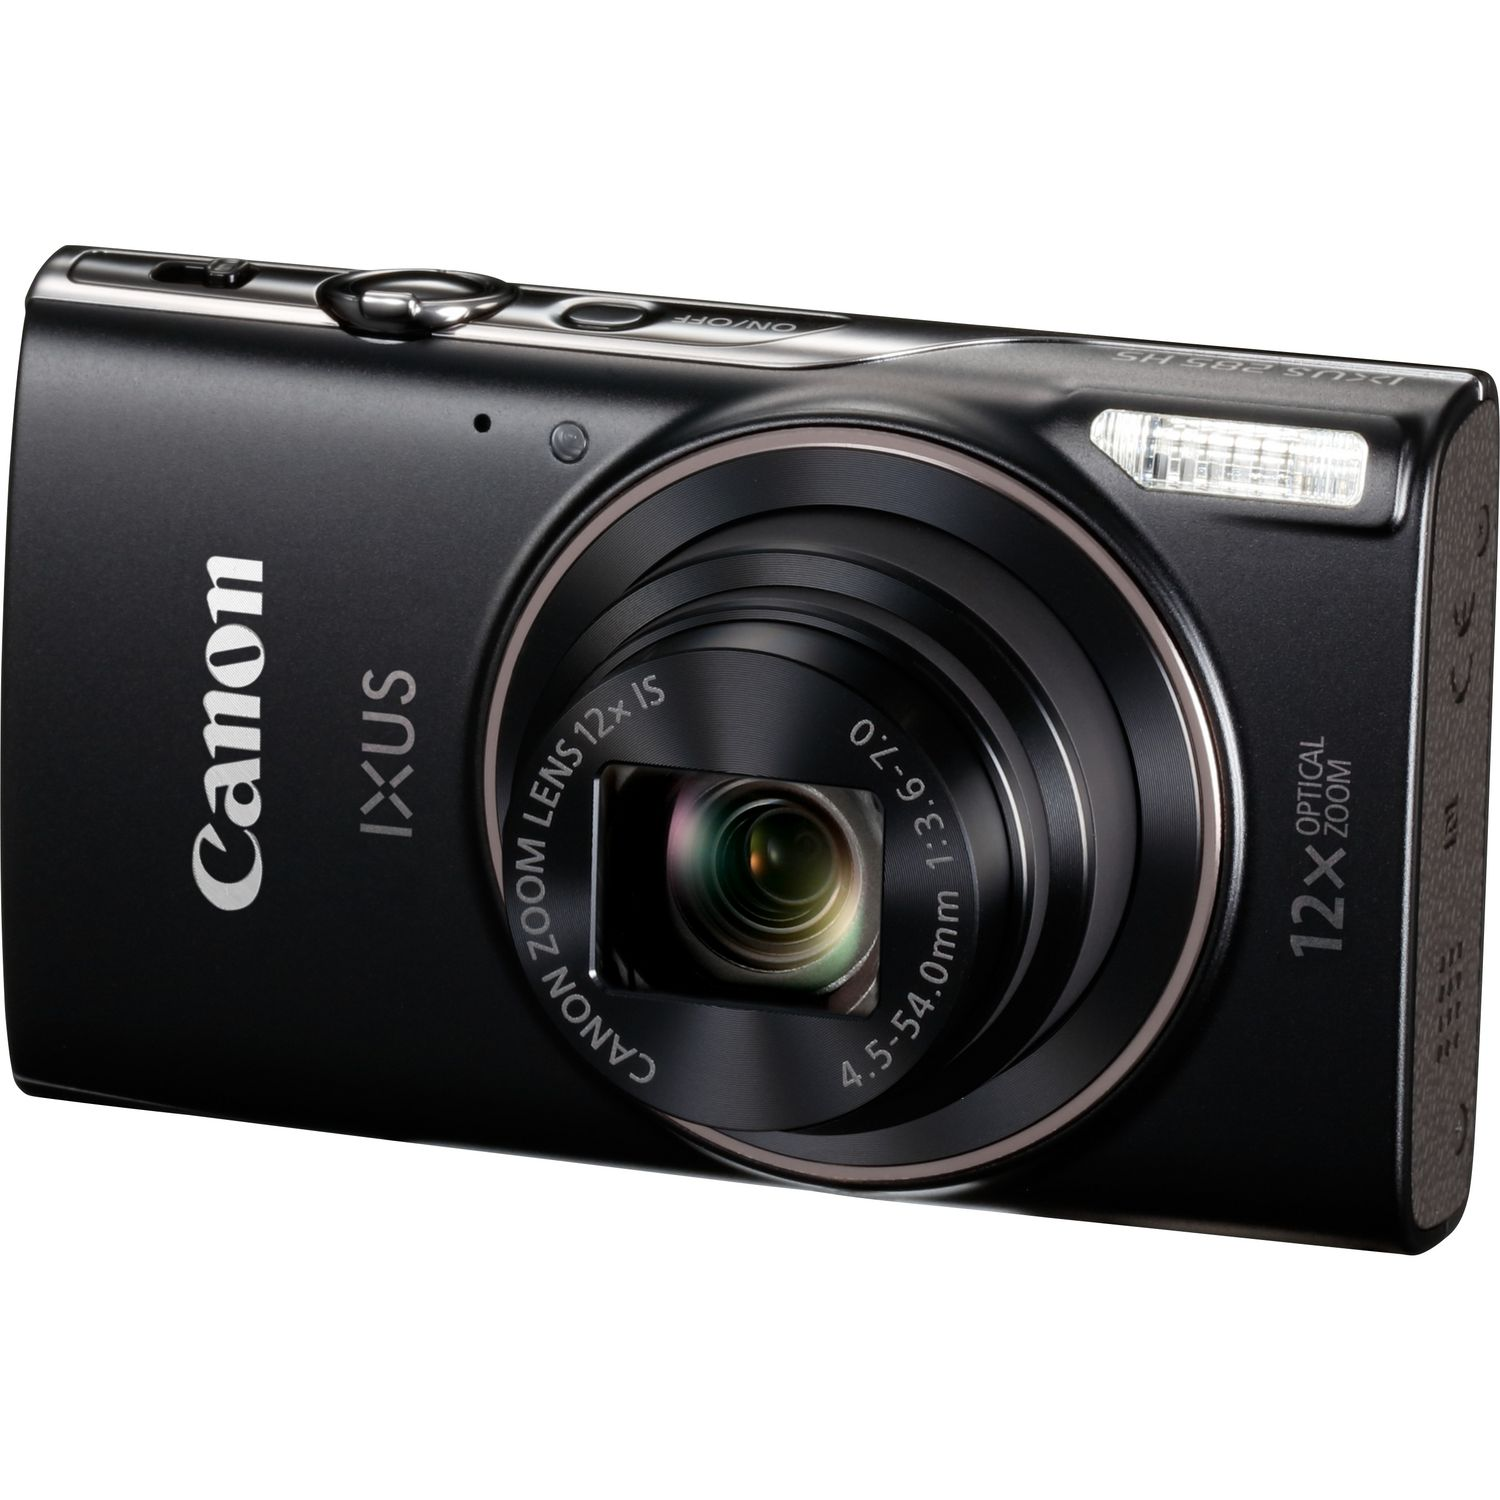 Canon IXUS 285 HS (3.0 inch Screen) Compact Digital Camera 12x Optical Zoom Wifi (Black) with 128GB SD Card and Case